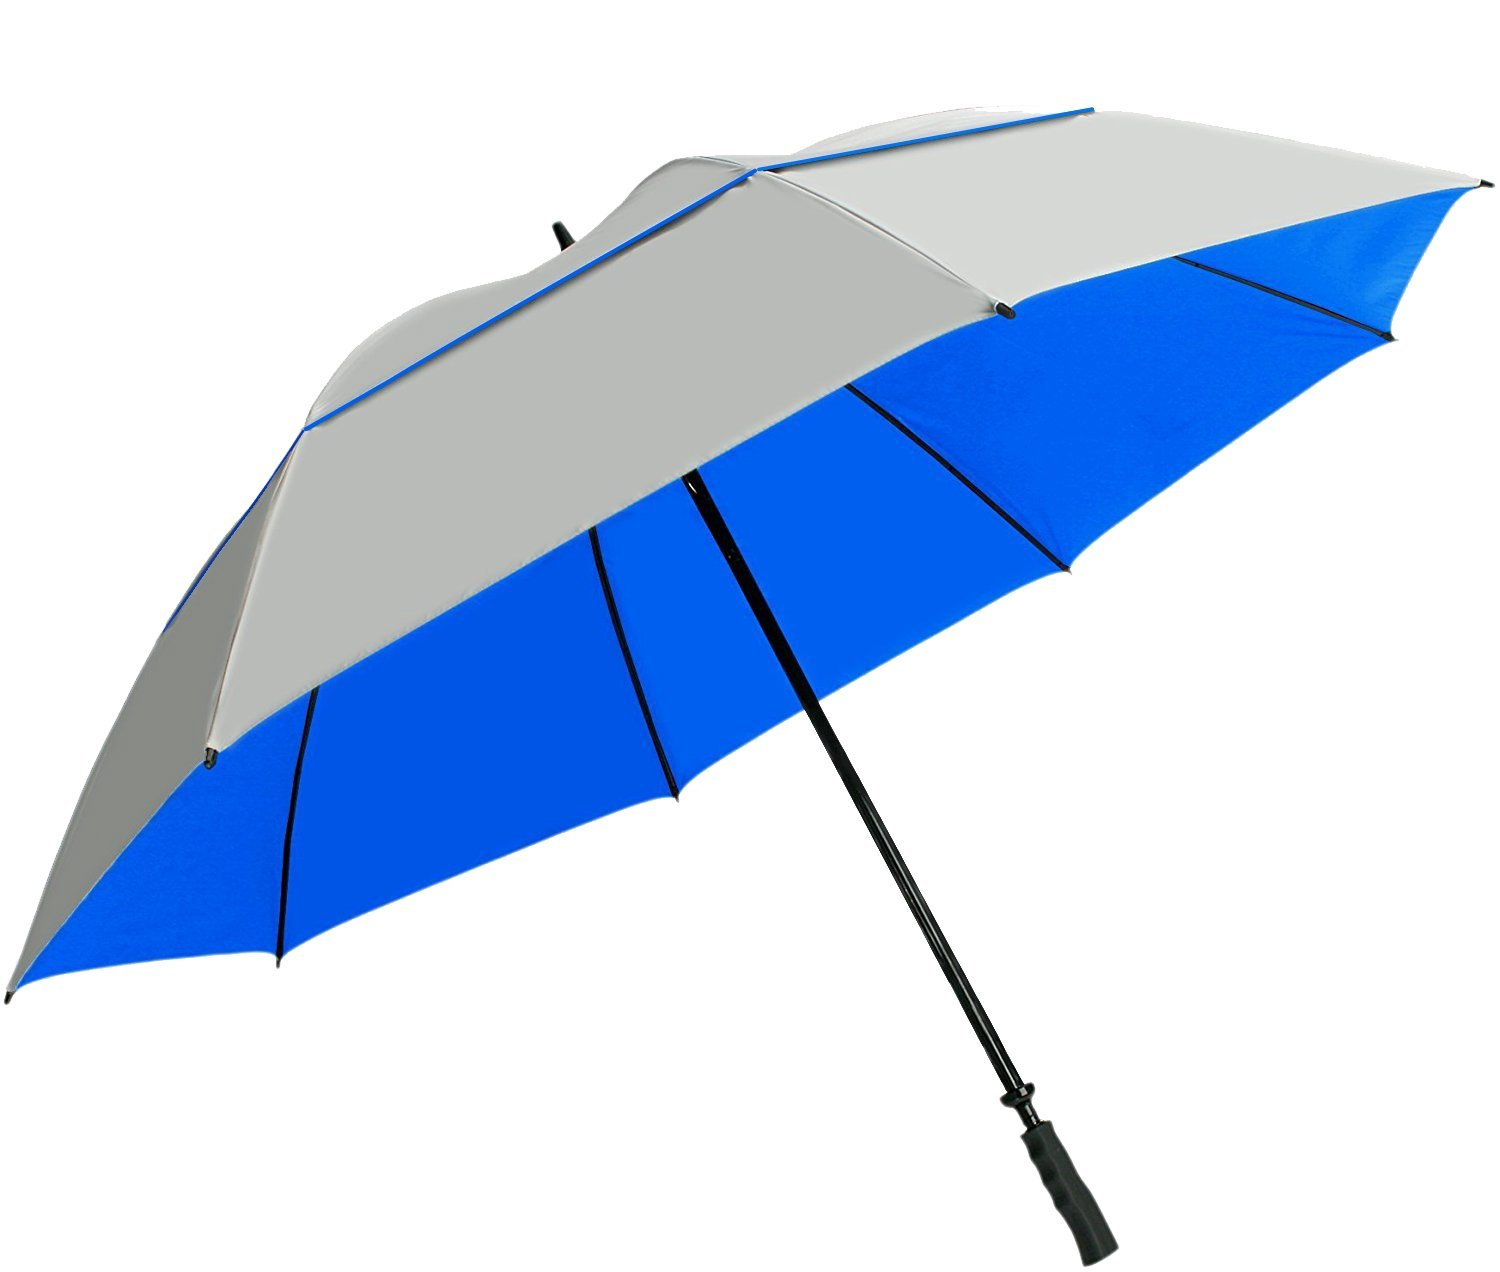 "Suntek 68"" UV Protection Windcheater Umbrella with Vented Canopy - Silver/Blue"